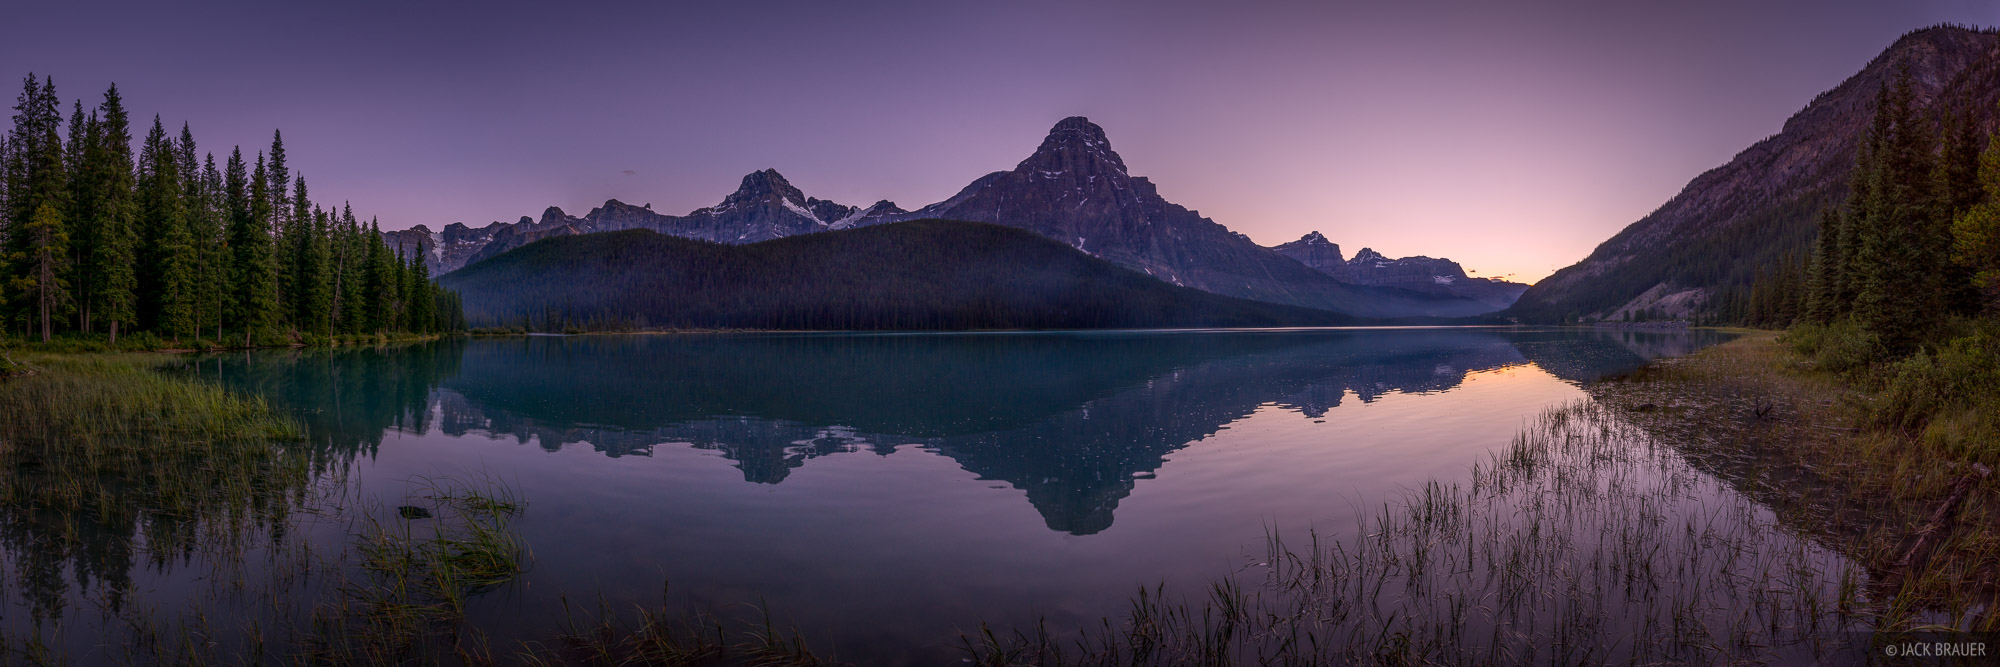 Alberta, Banff National Park, Canada, Canadian Rockies, Mount Chephren, Waterfowl Lakes, panorama, photo